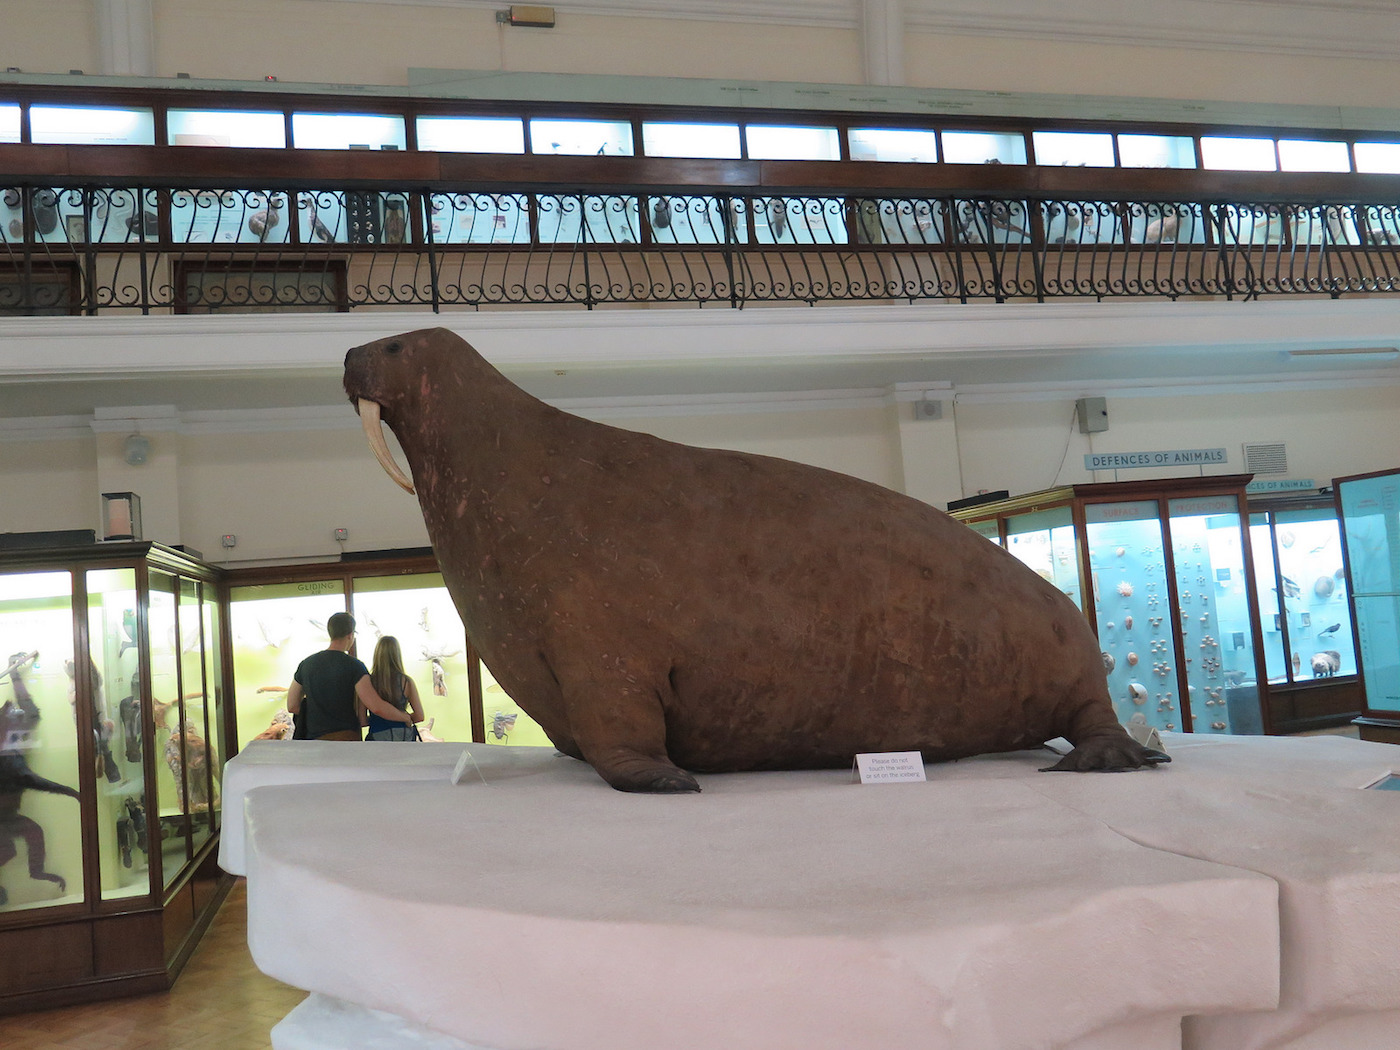 Walrus at the Horniman Museum & Gardens in London (photo by Régine Debatty/Flickr)